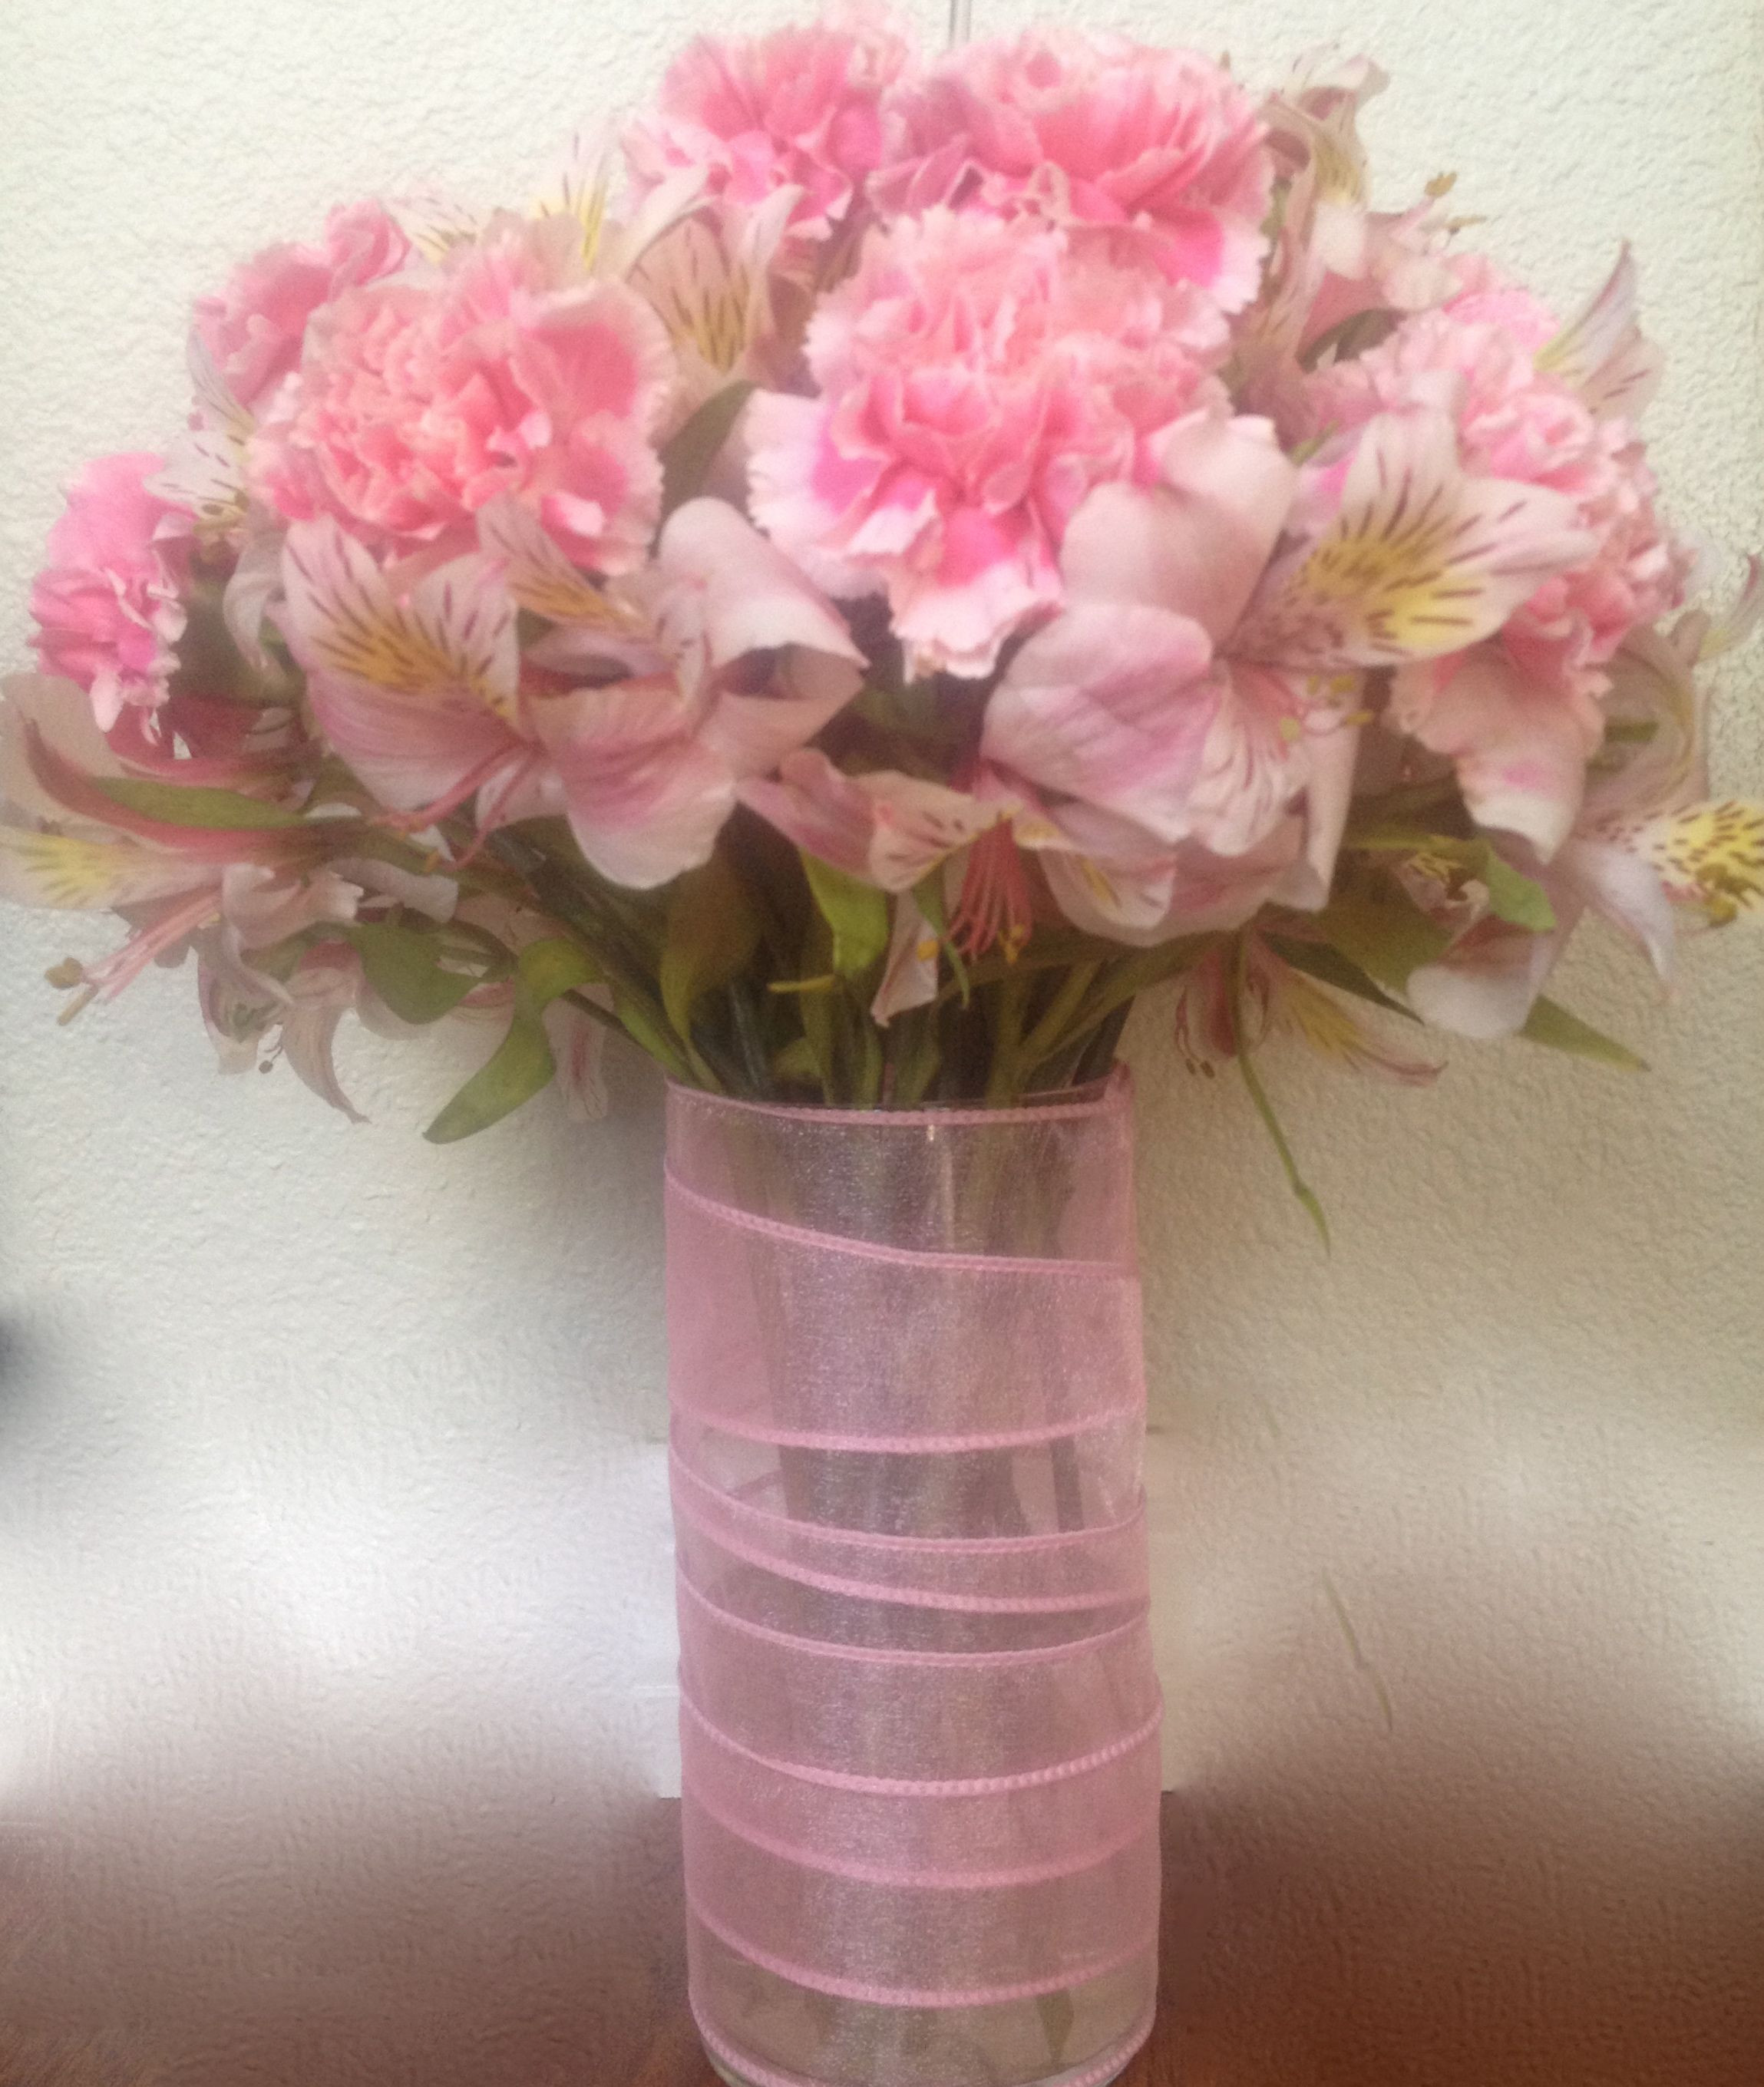 carnation arrangements in vase of its a girl pink carnations alstroemeria in a glass vase wrapped with pink carnations alstroemeria in a glass vase wrapped in pink ribbon